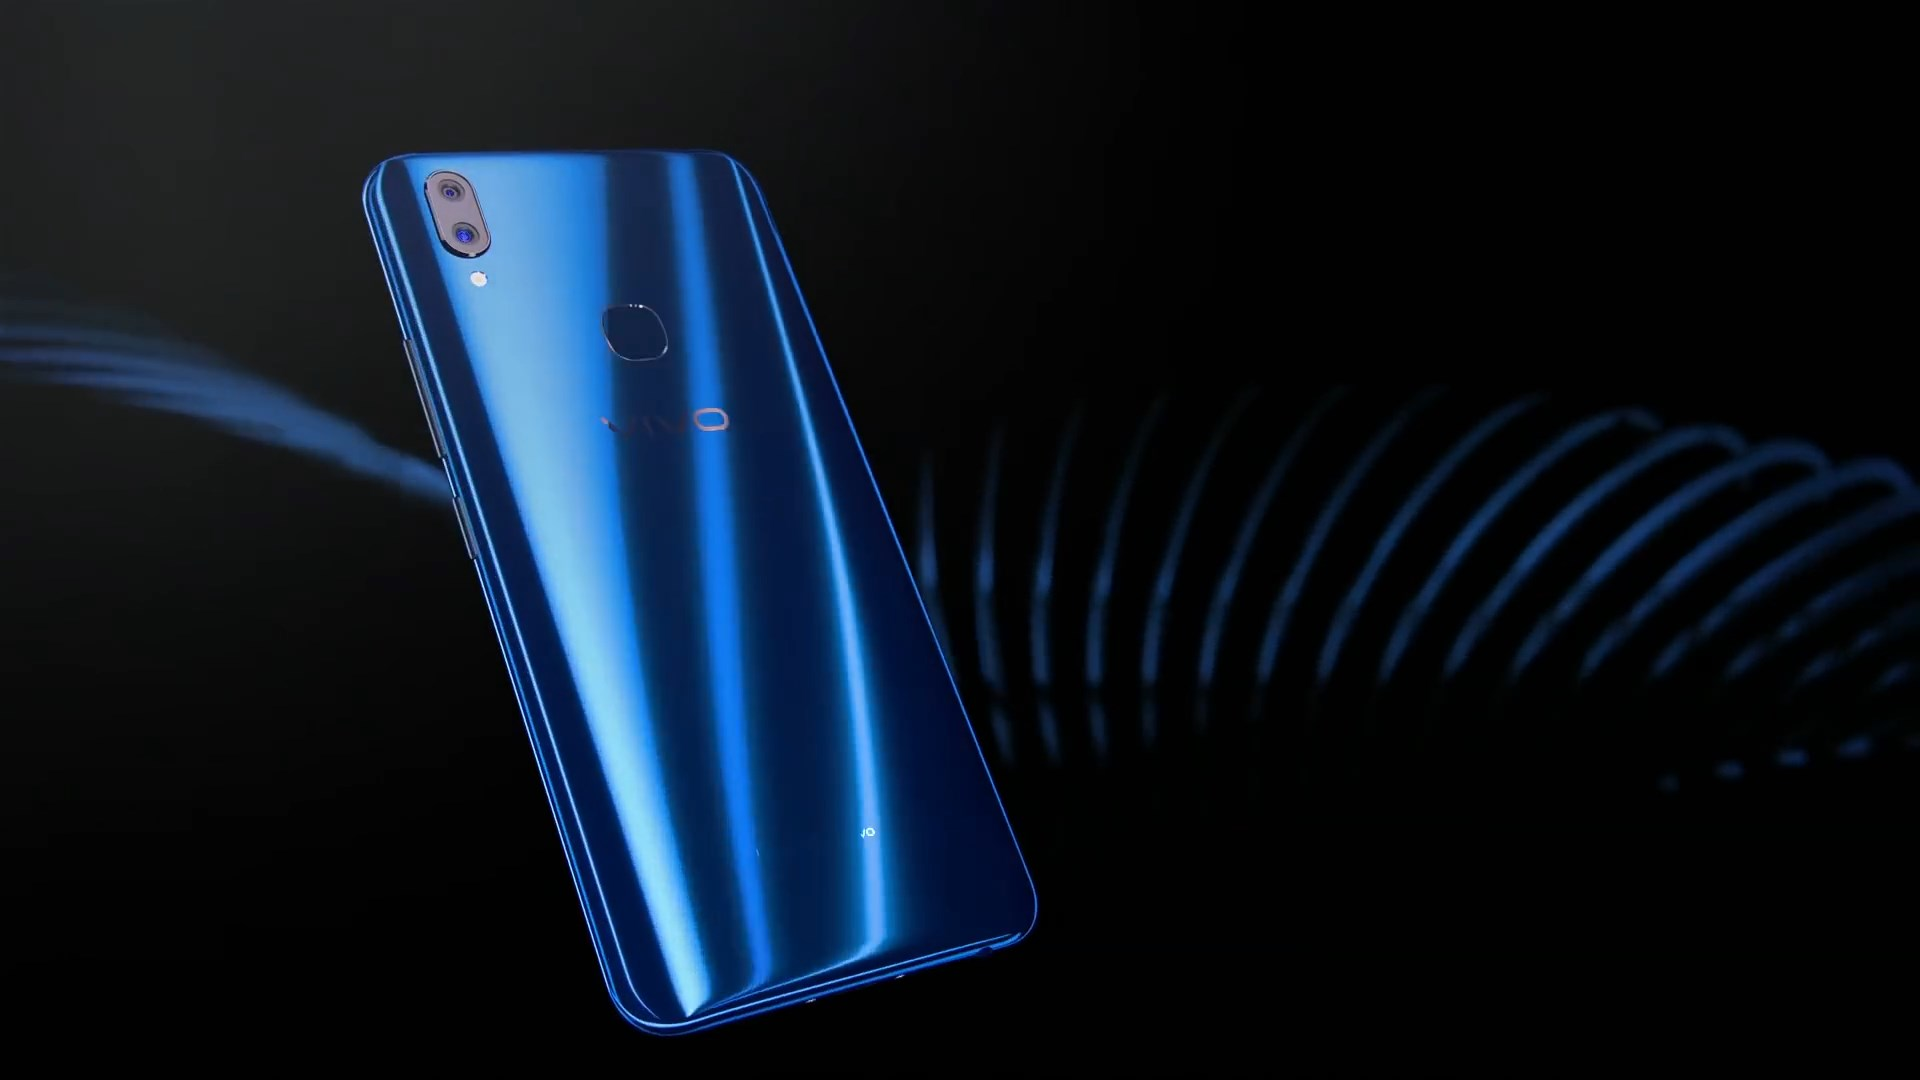 Vivo is yet another Chinese OEM that is going after the infamous notch on the display that was popularized by Apple s iPhone X The first of its kind to